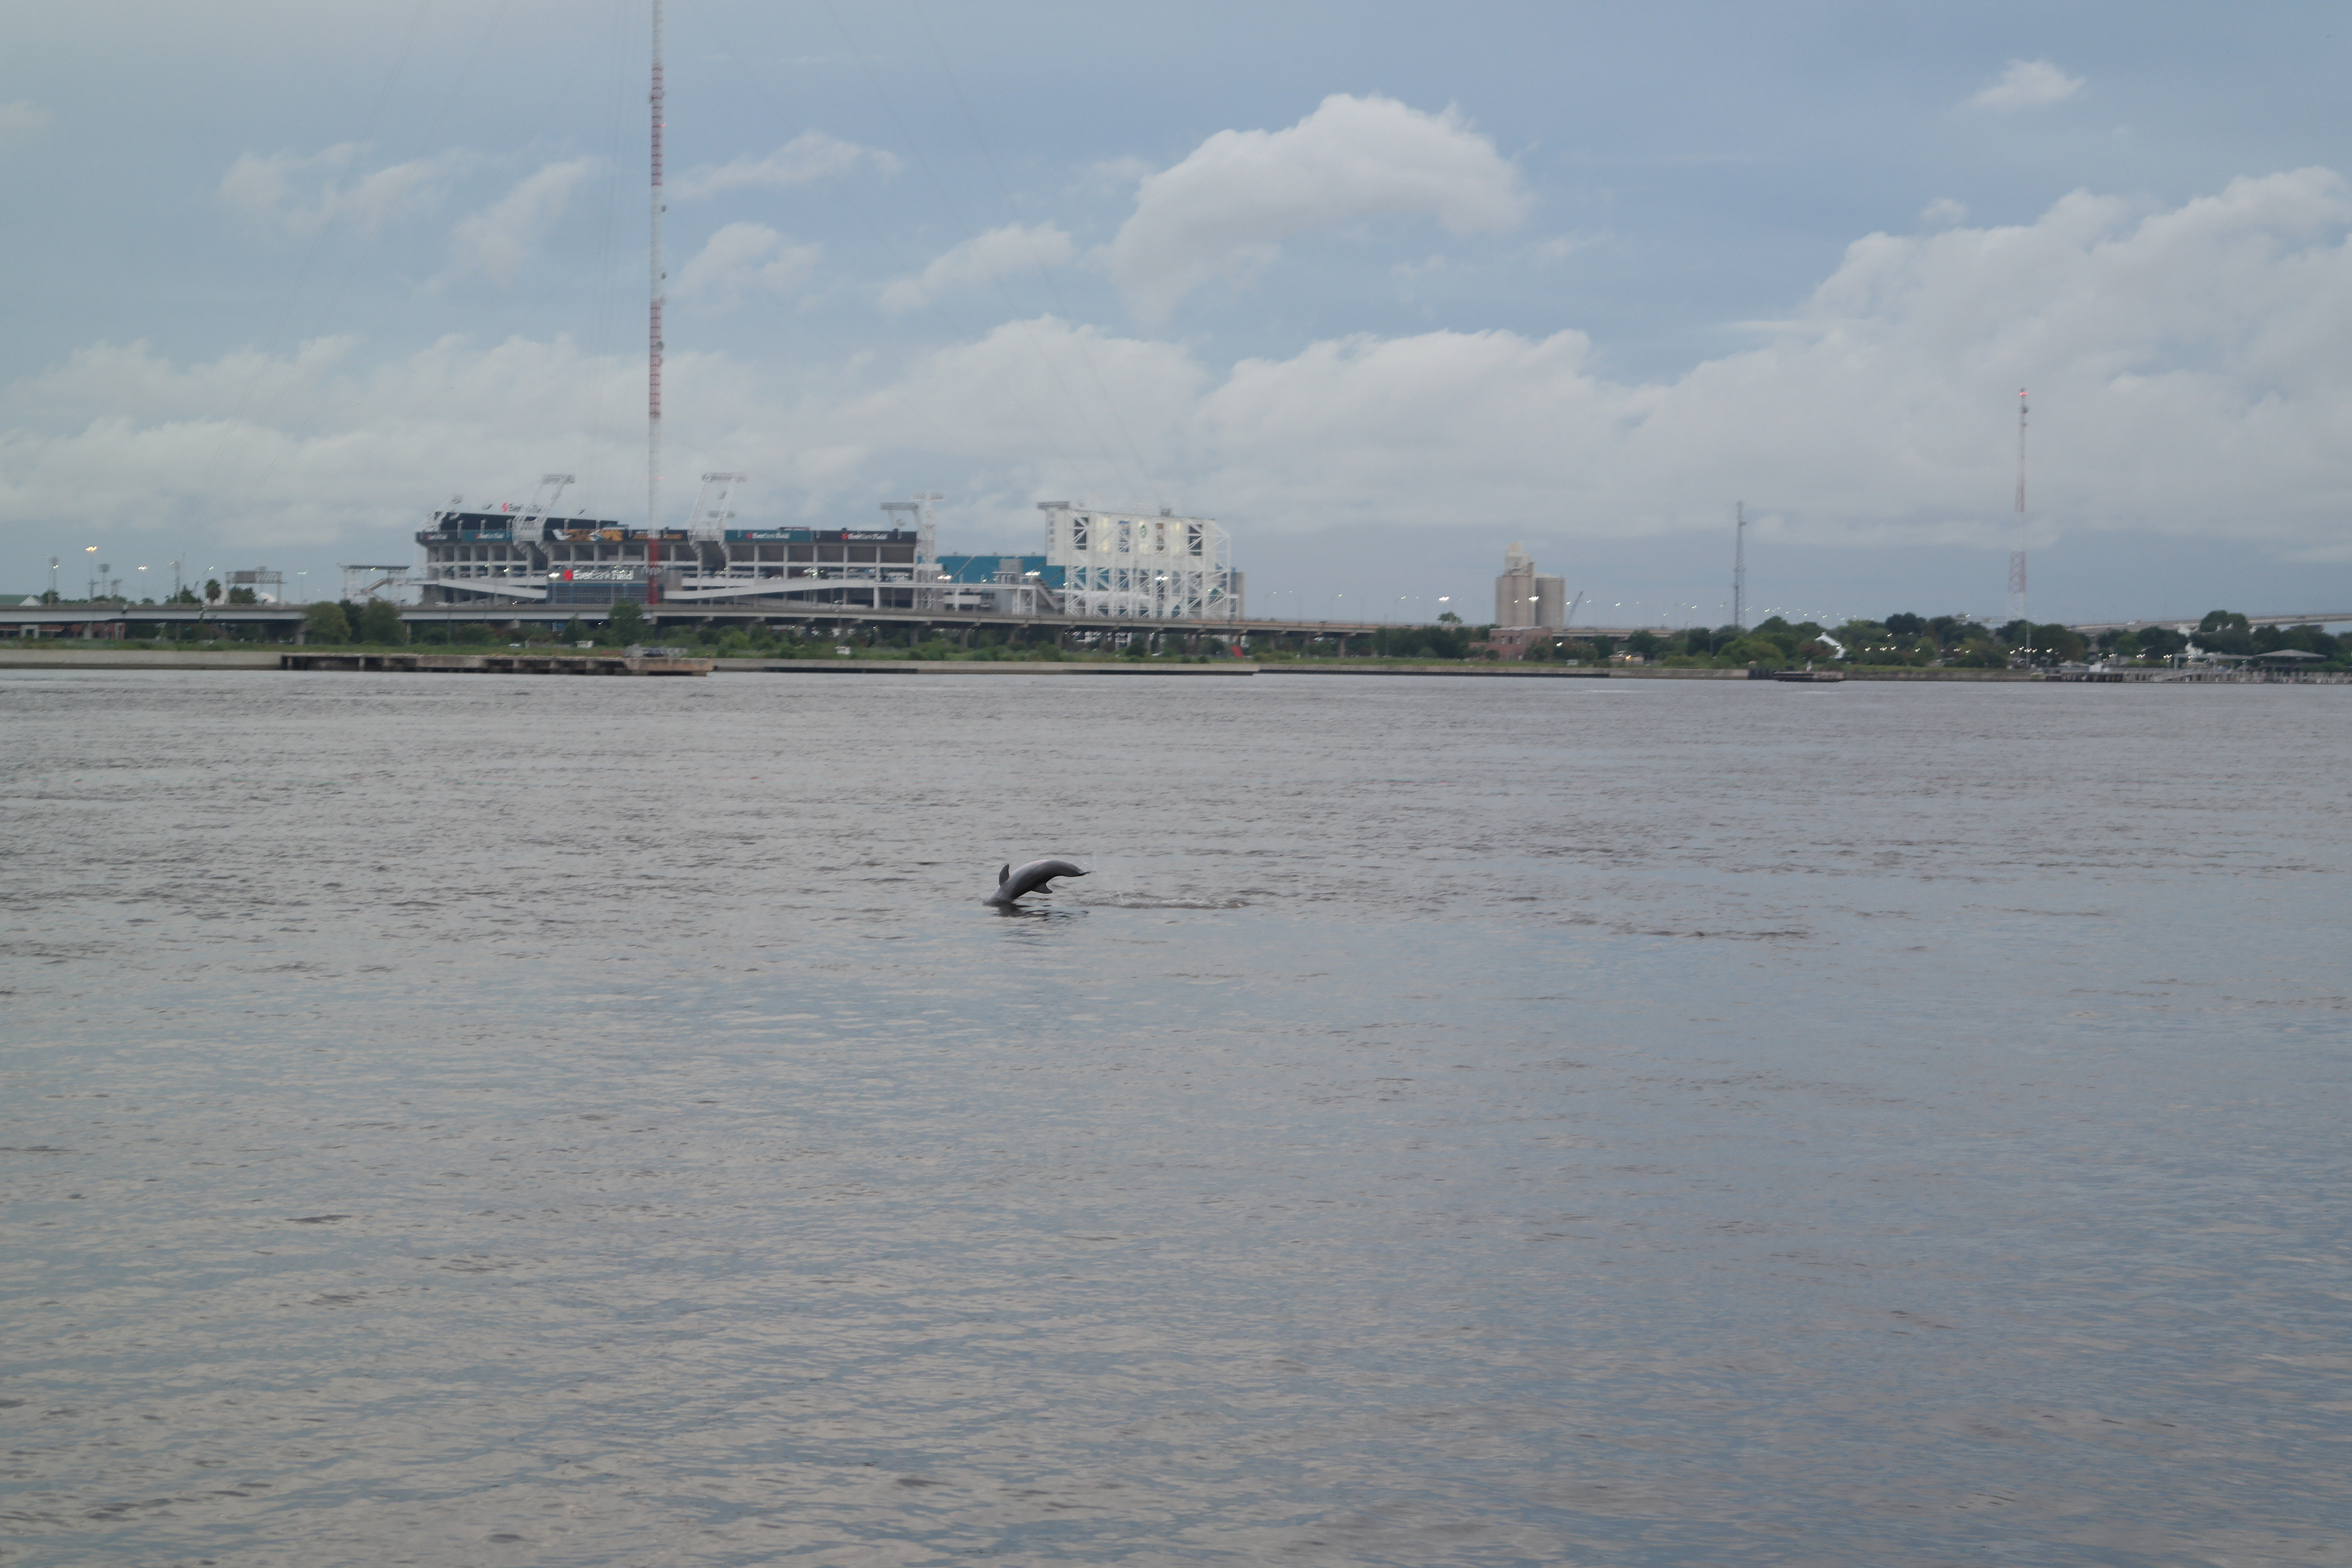 Dolphins In St John's River